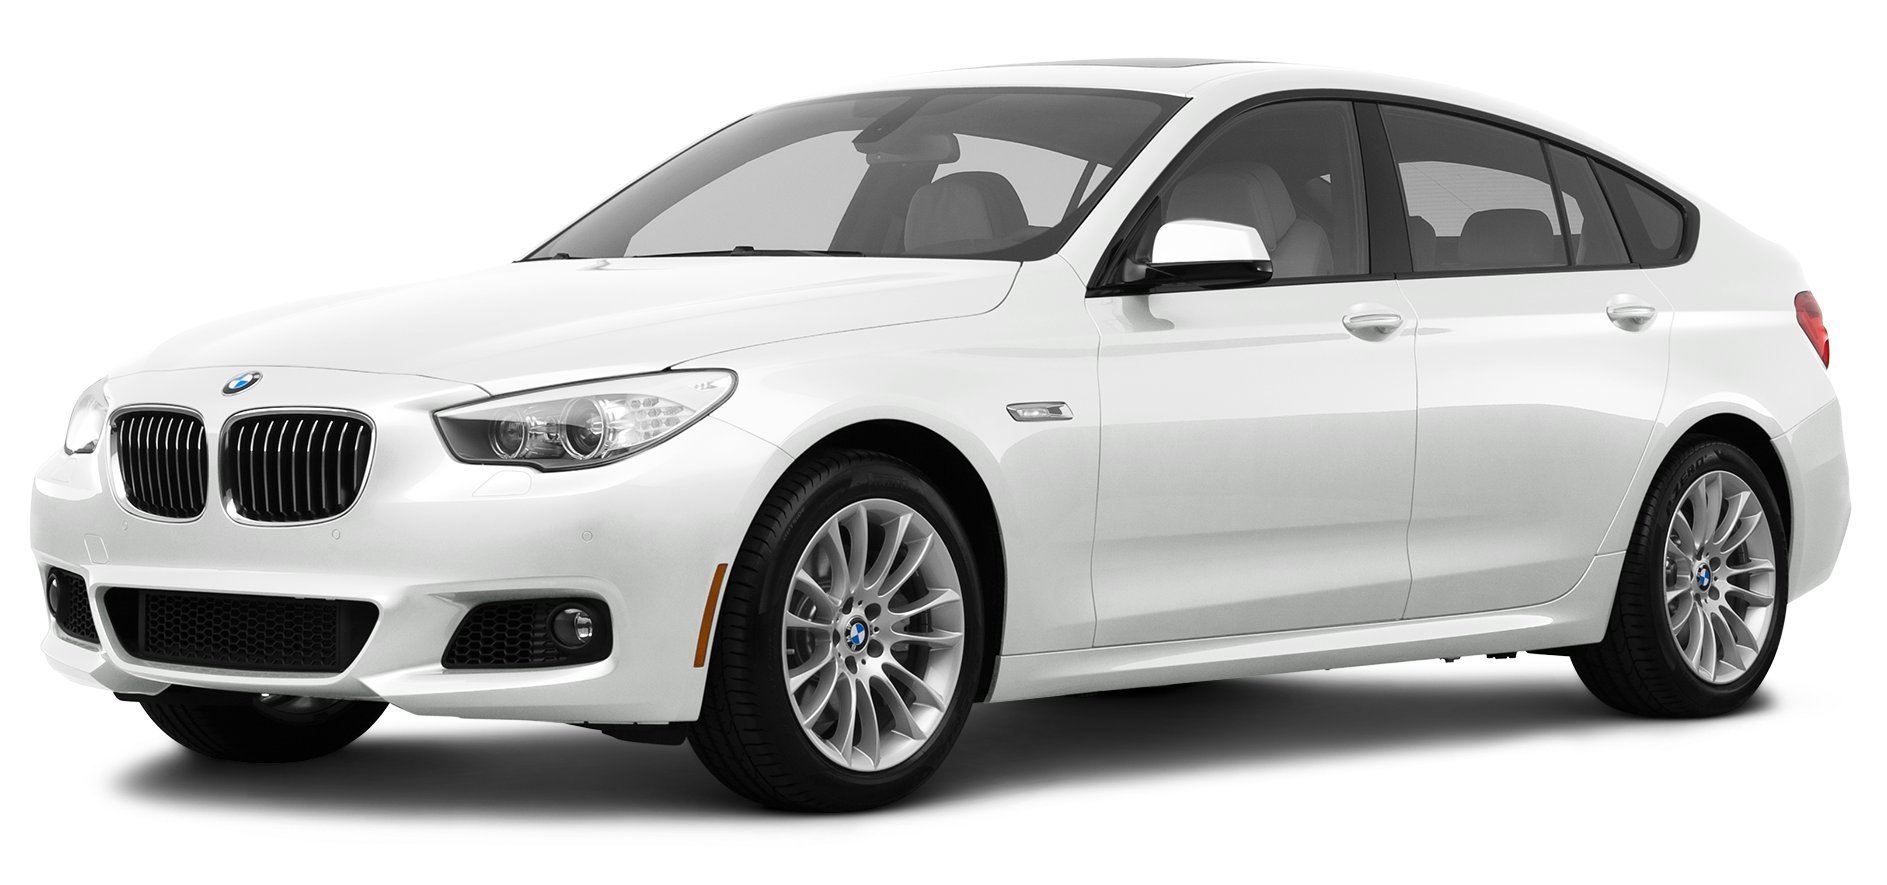 2012 BMW 535i GT, 5-Door Gran Turismo Rear Wheel Drive ...